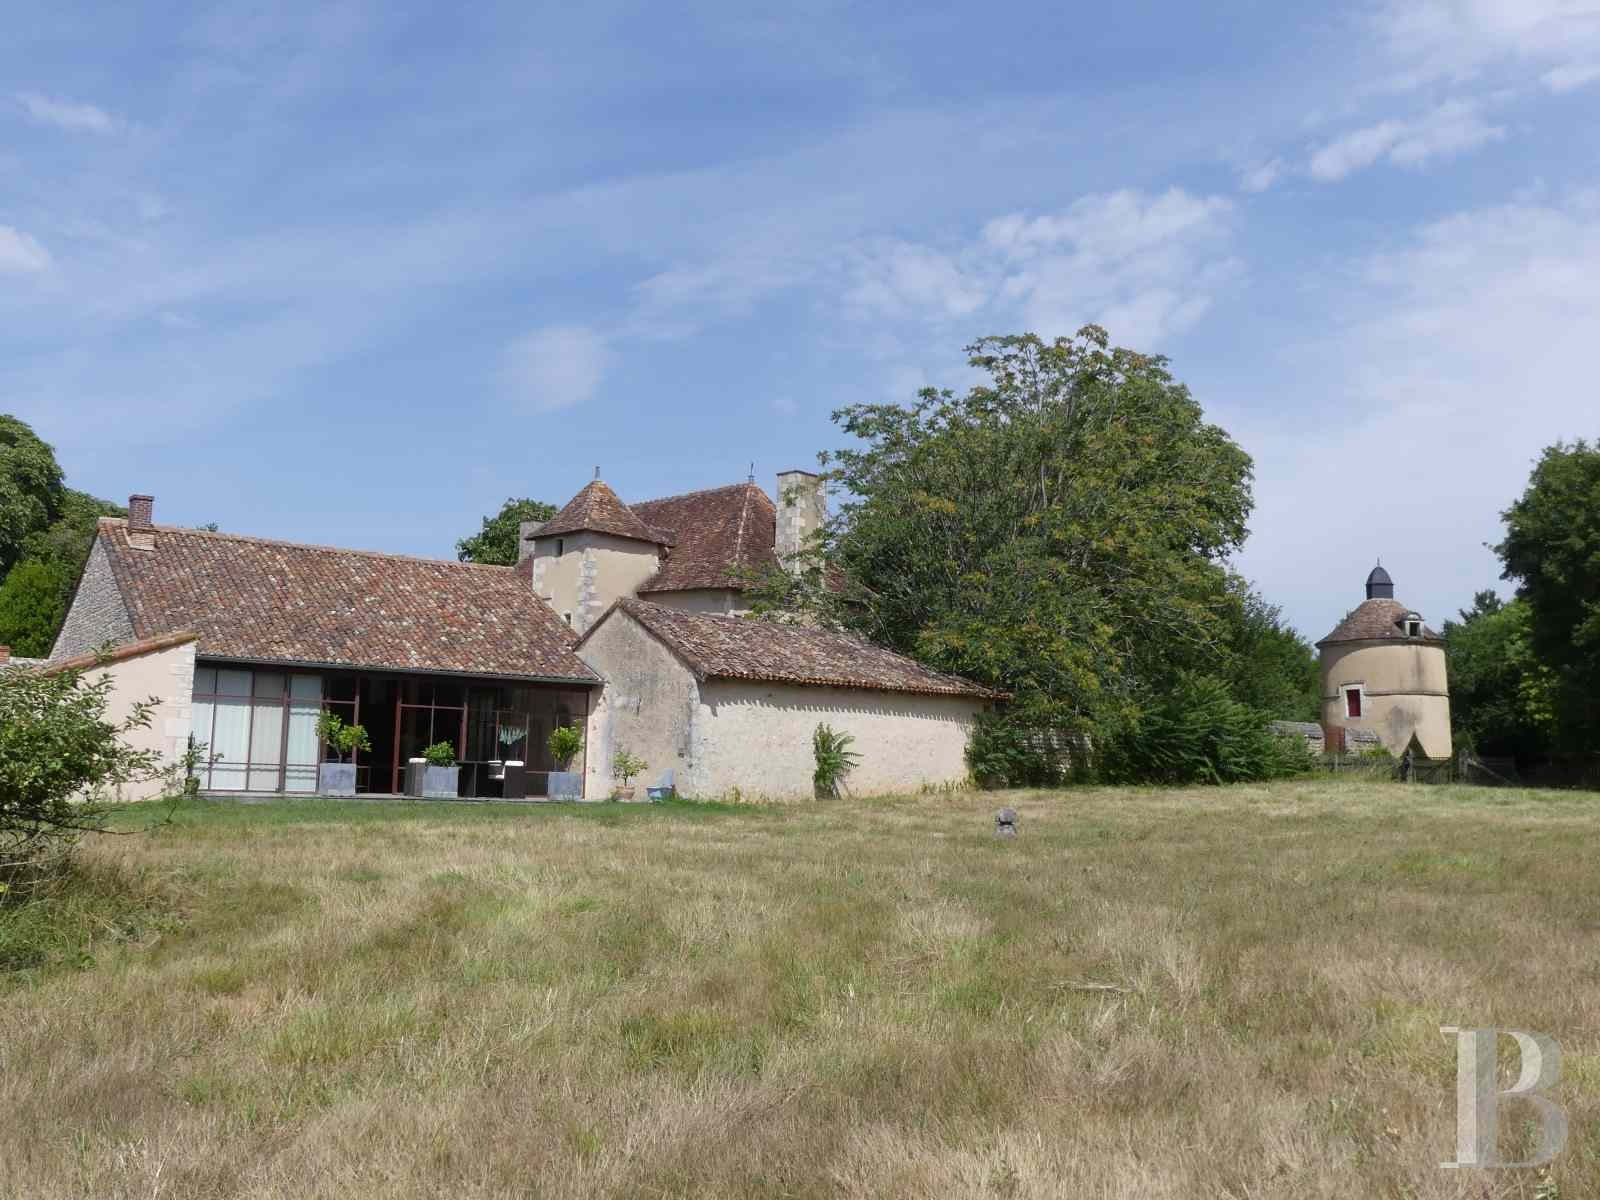 France mansions for sale poitou charentes poitiers estate - 13 zoom